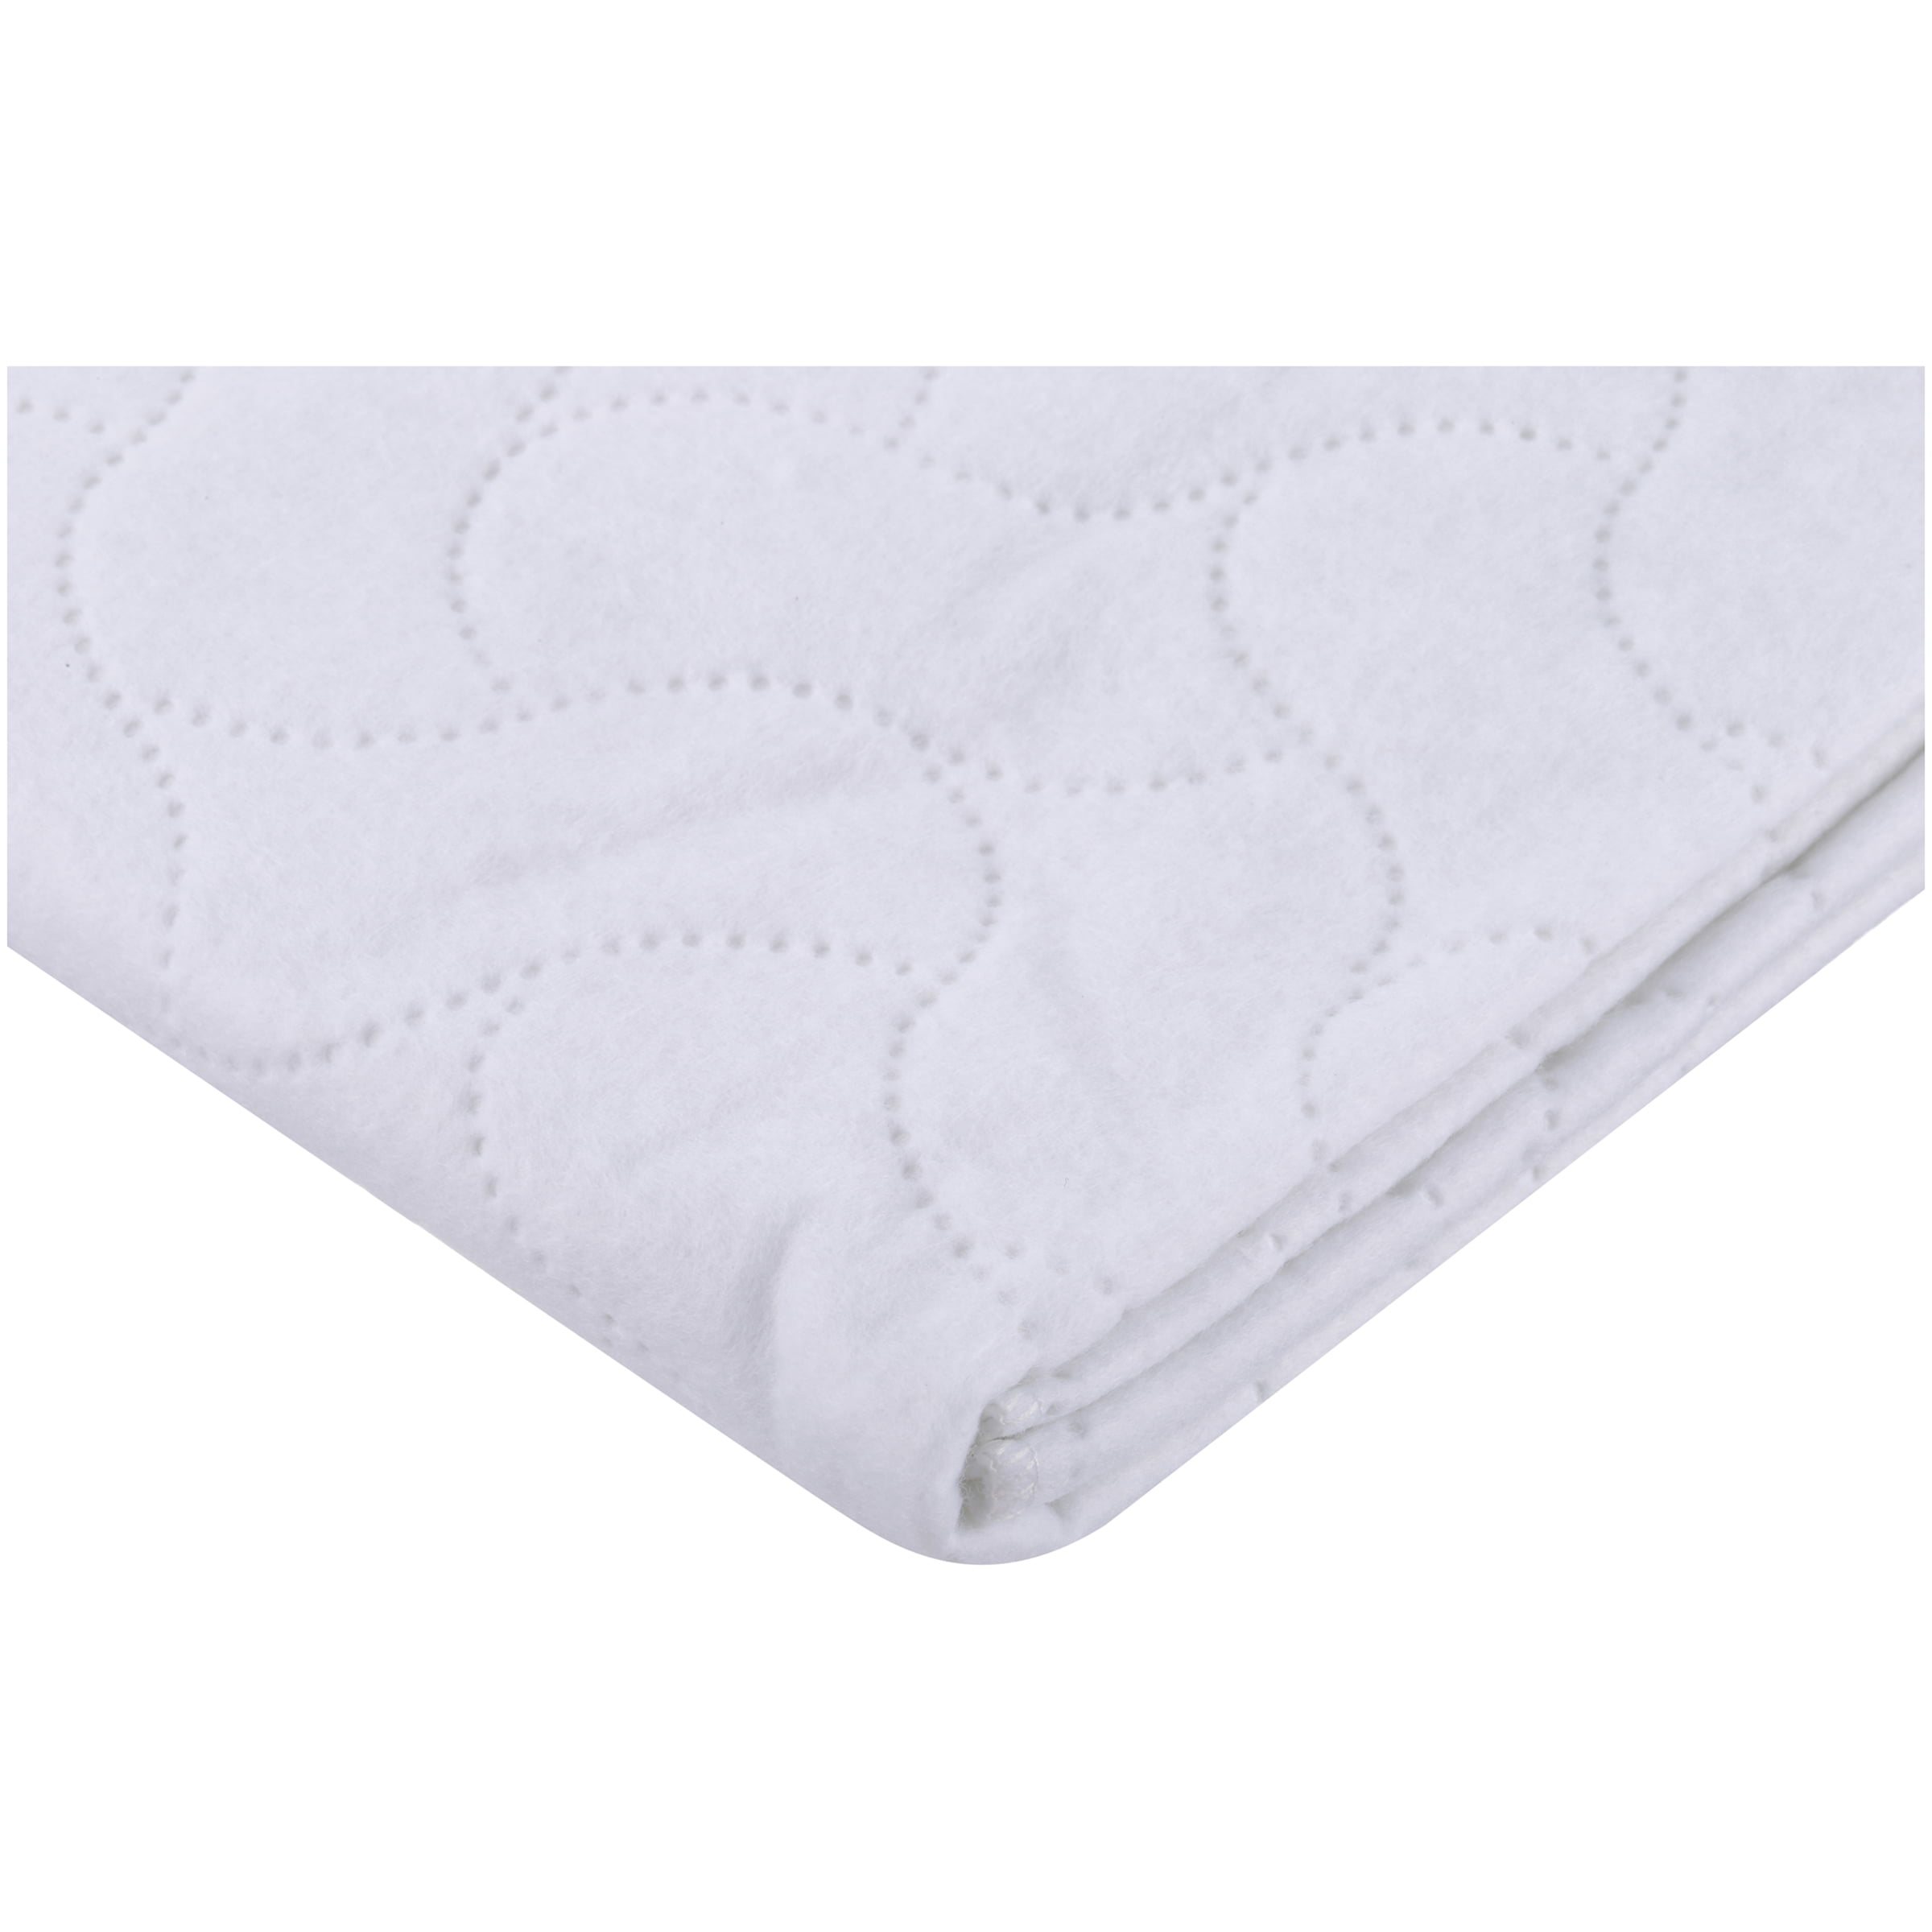 TL Care Waterproof Quilted Crib Pad by TL Care Inc